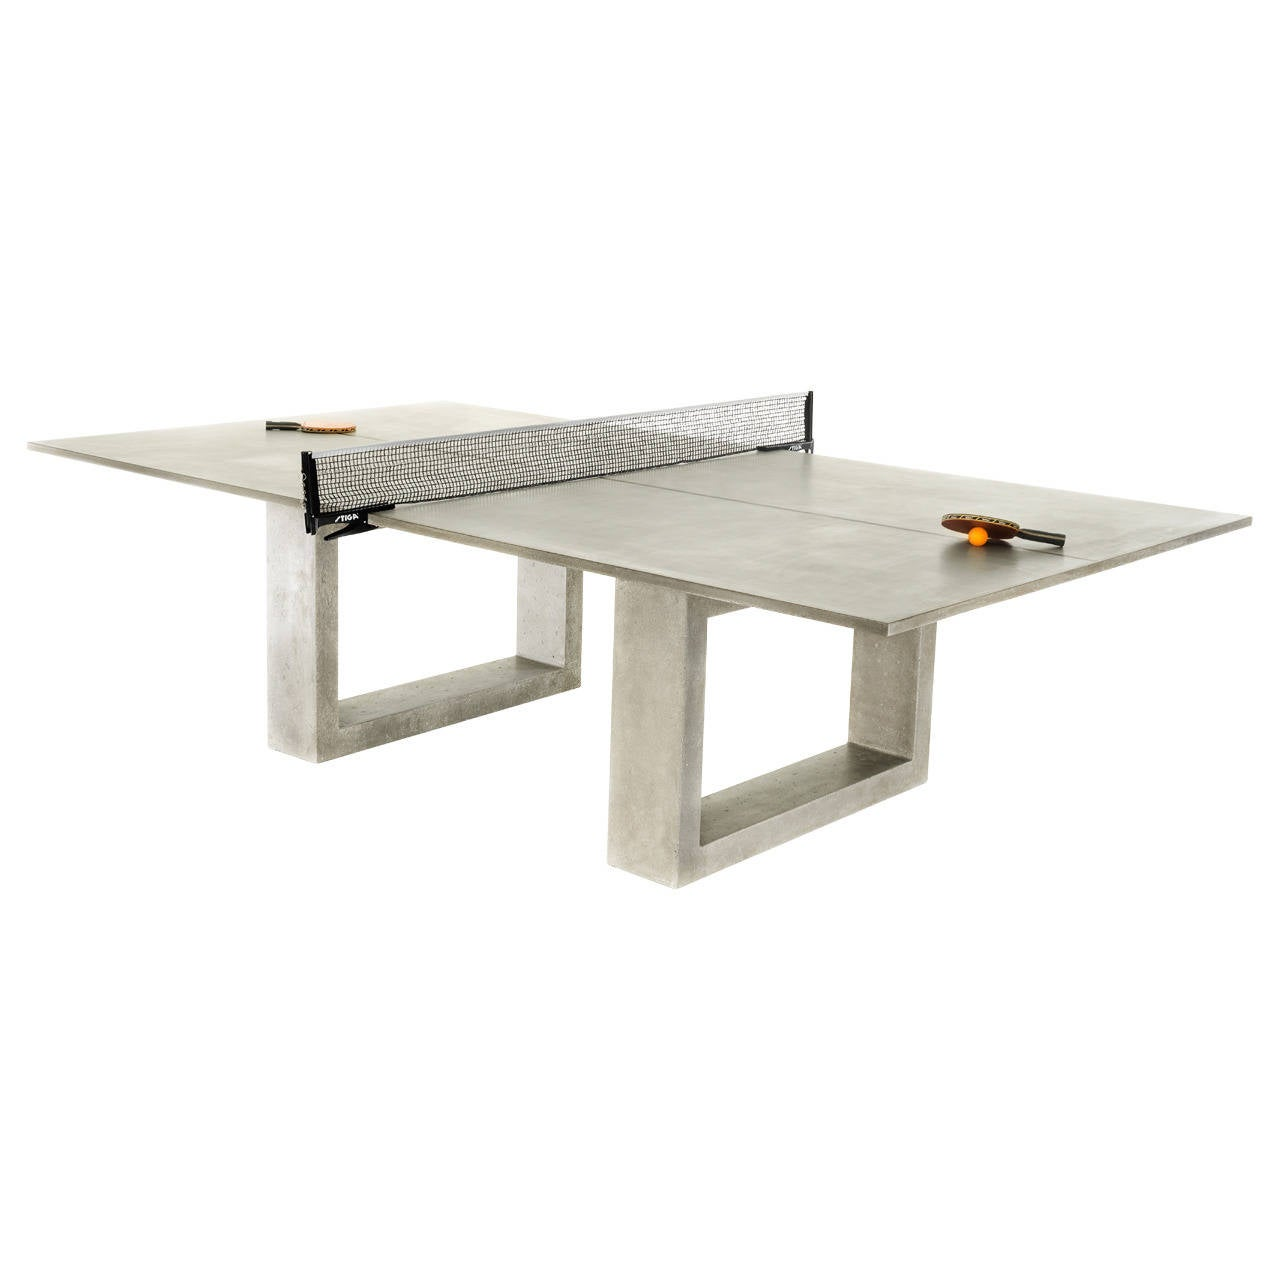 james de wulf ping pong dining table at 1stdibs. Black Bedroom Furniture Sets. Home Design Ideas